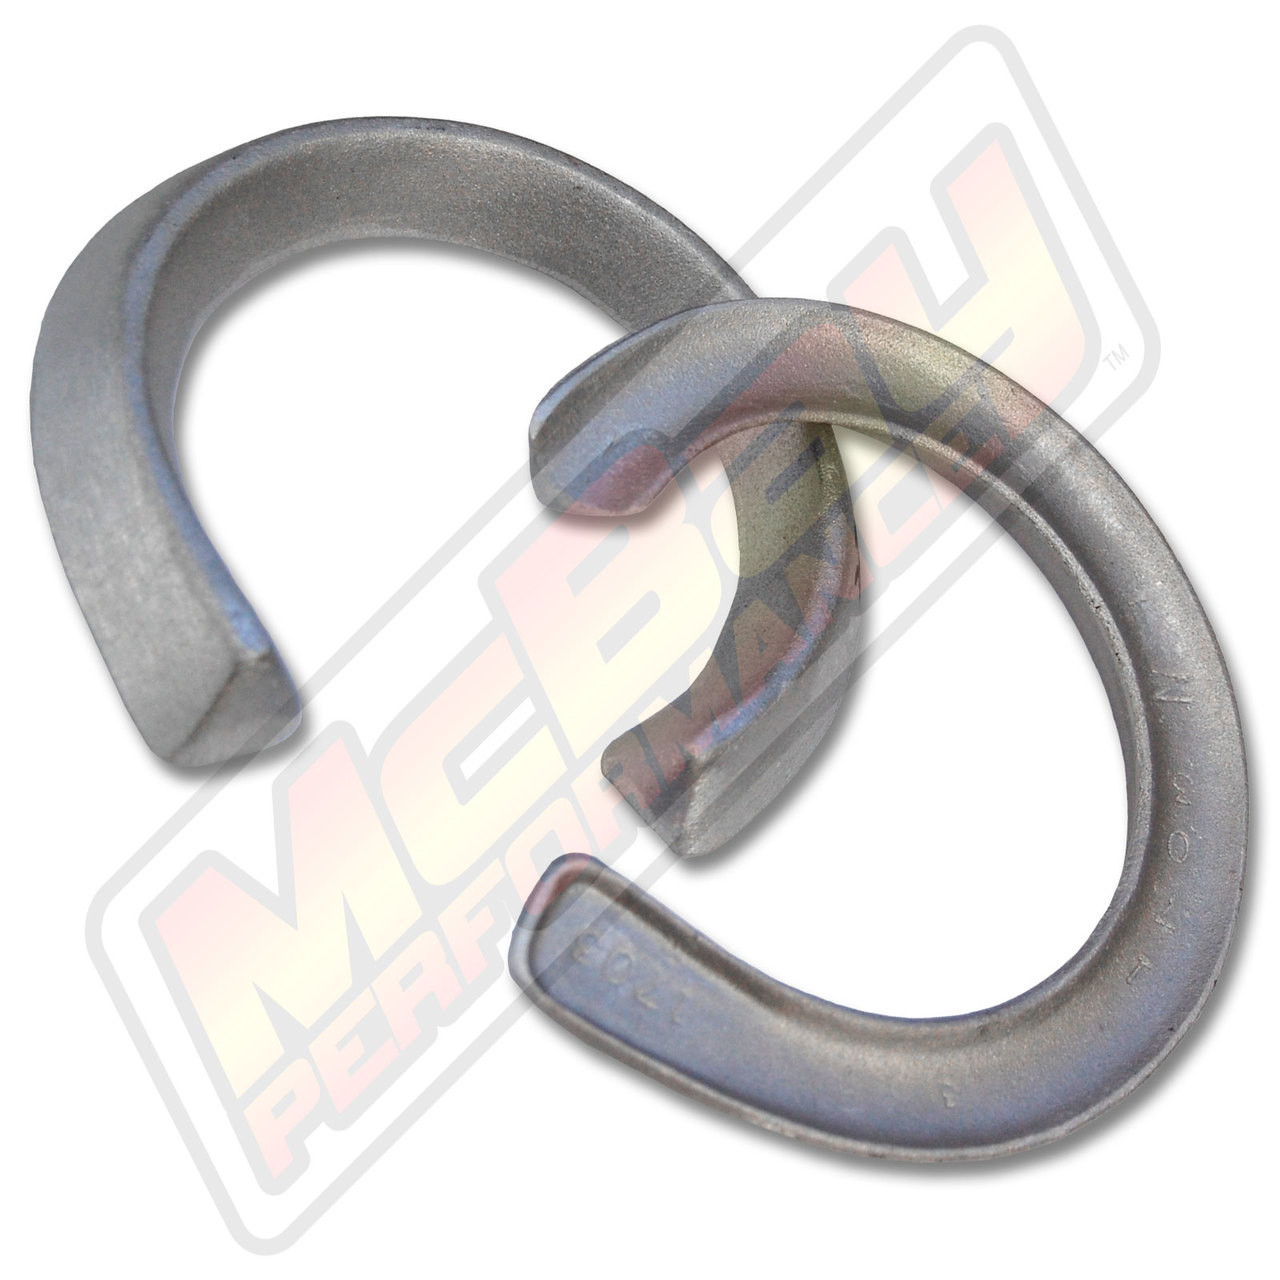 """Part Number 1703- 1-1/4"""" to 1-1/2"""" Lift Front Coil Spring Spacer Set"""